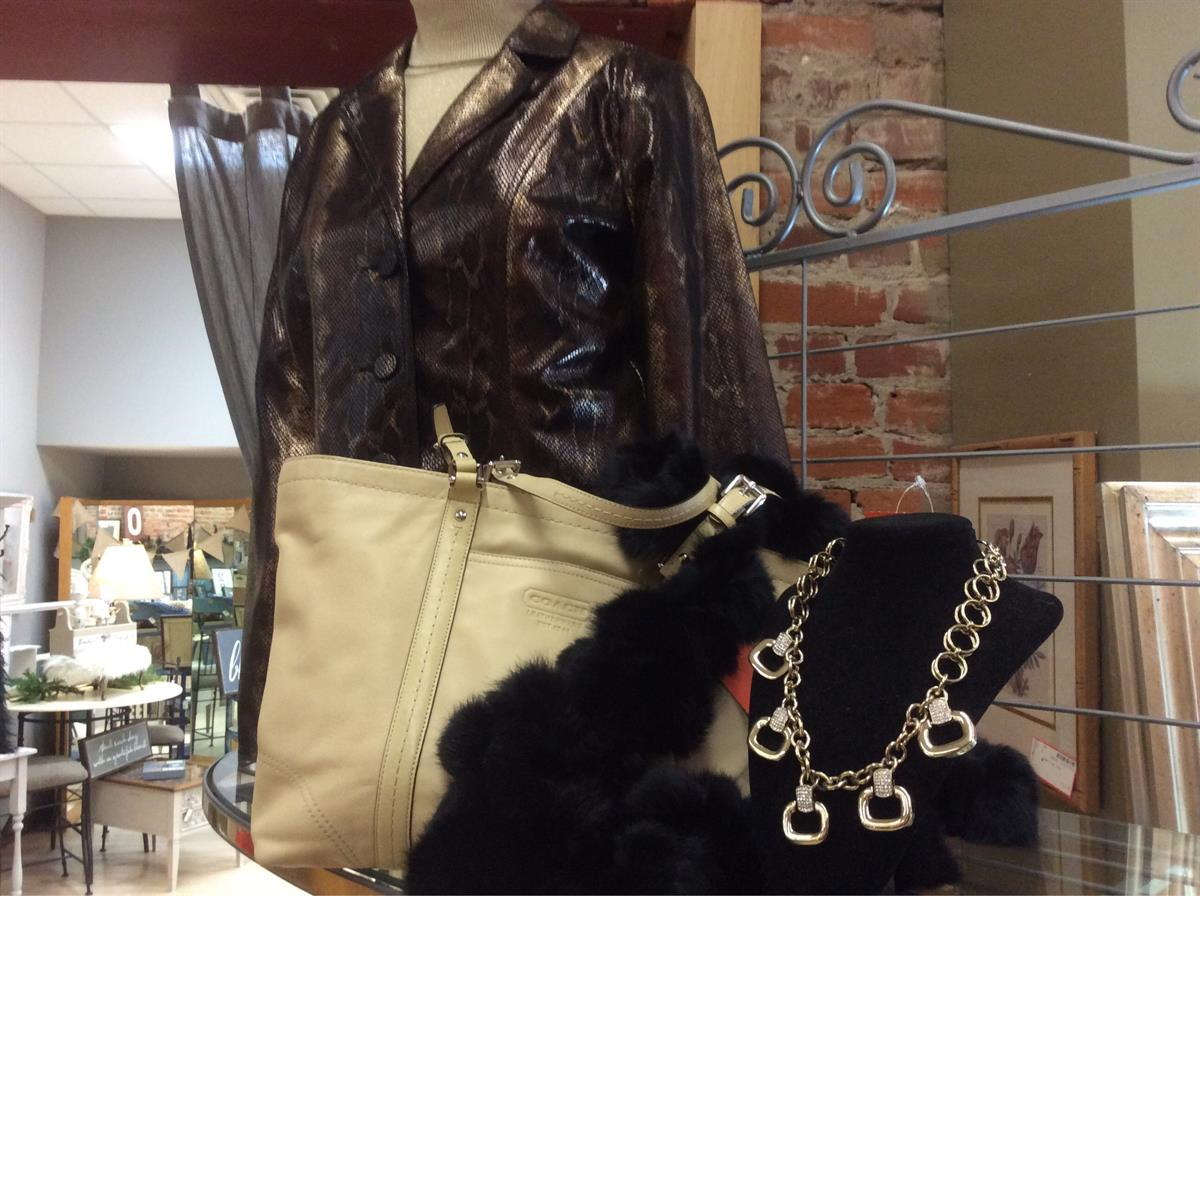 Consigned Women's clothing and accessories at Refashion Consigned Furniture and Clothing